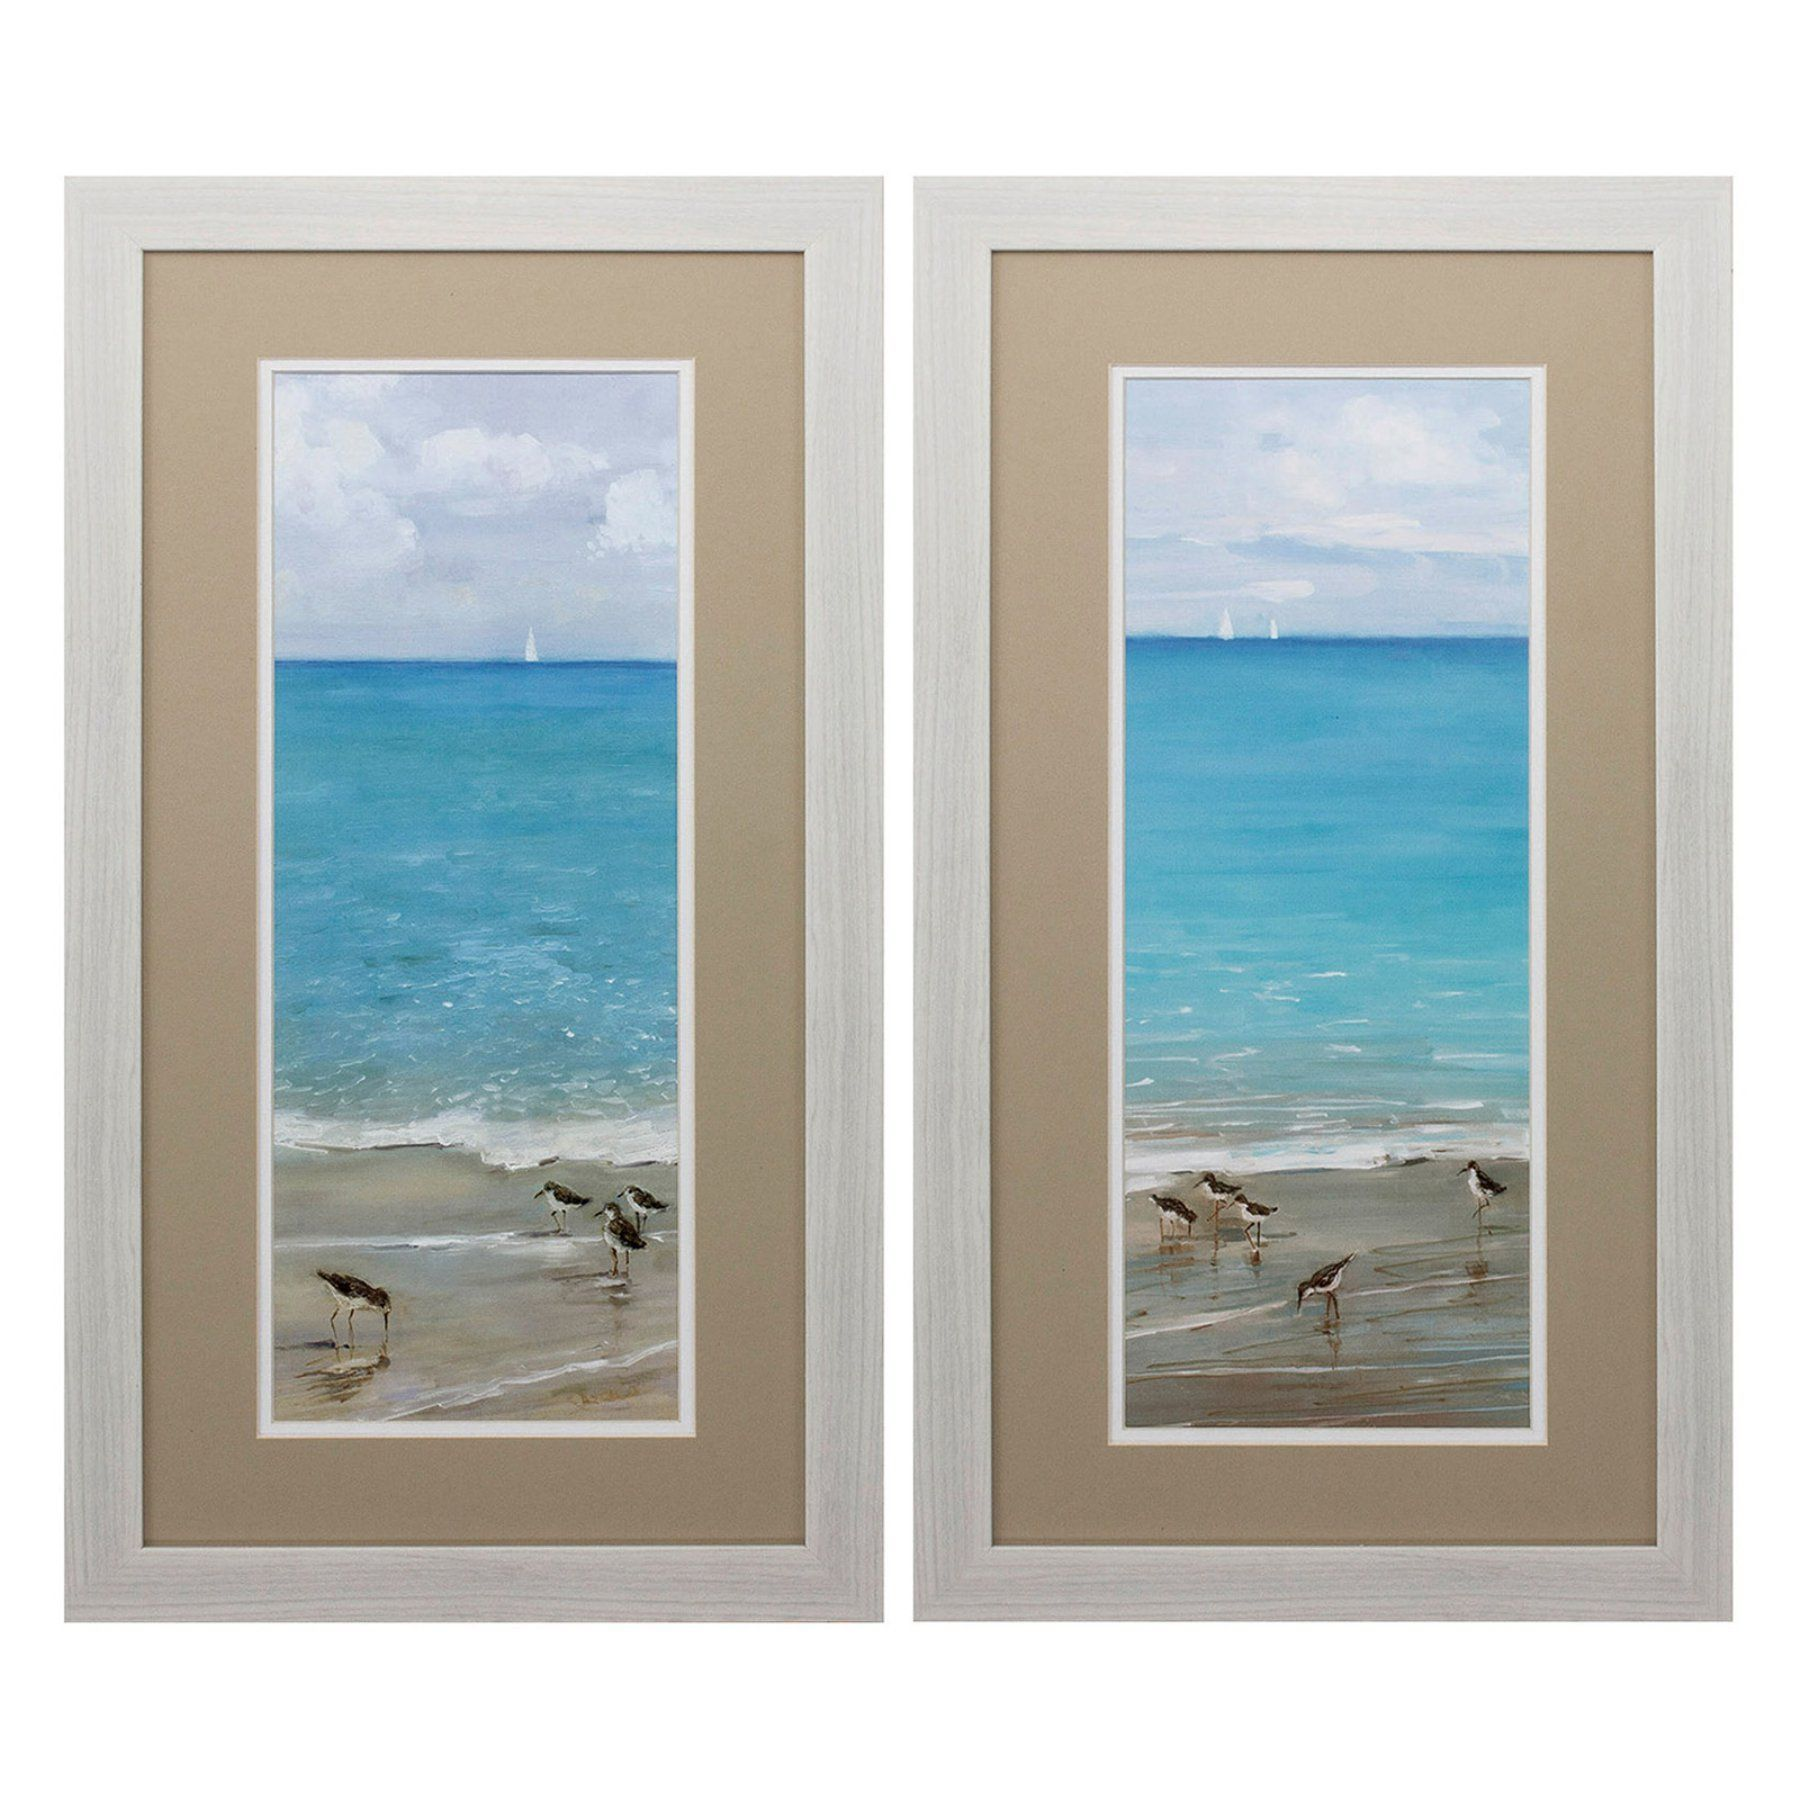 Propac Images Brunch On The Beach Framed Wall Art - Set of 2 - 2851 ...